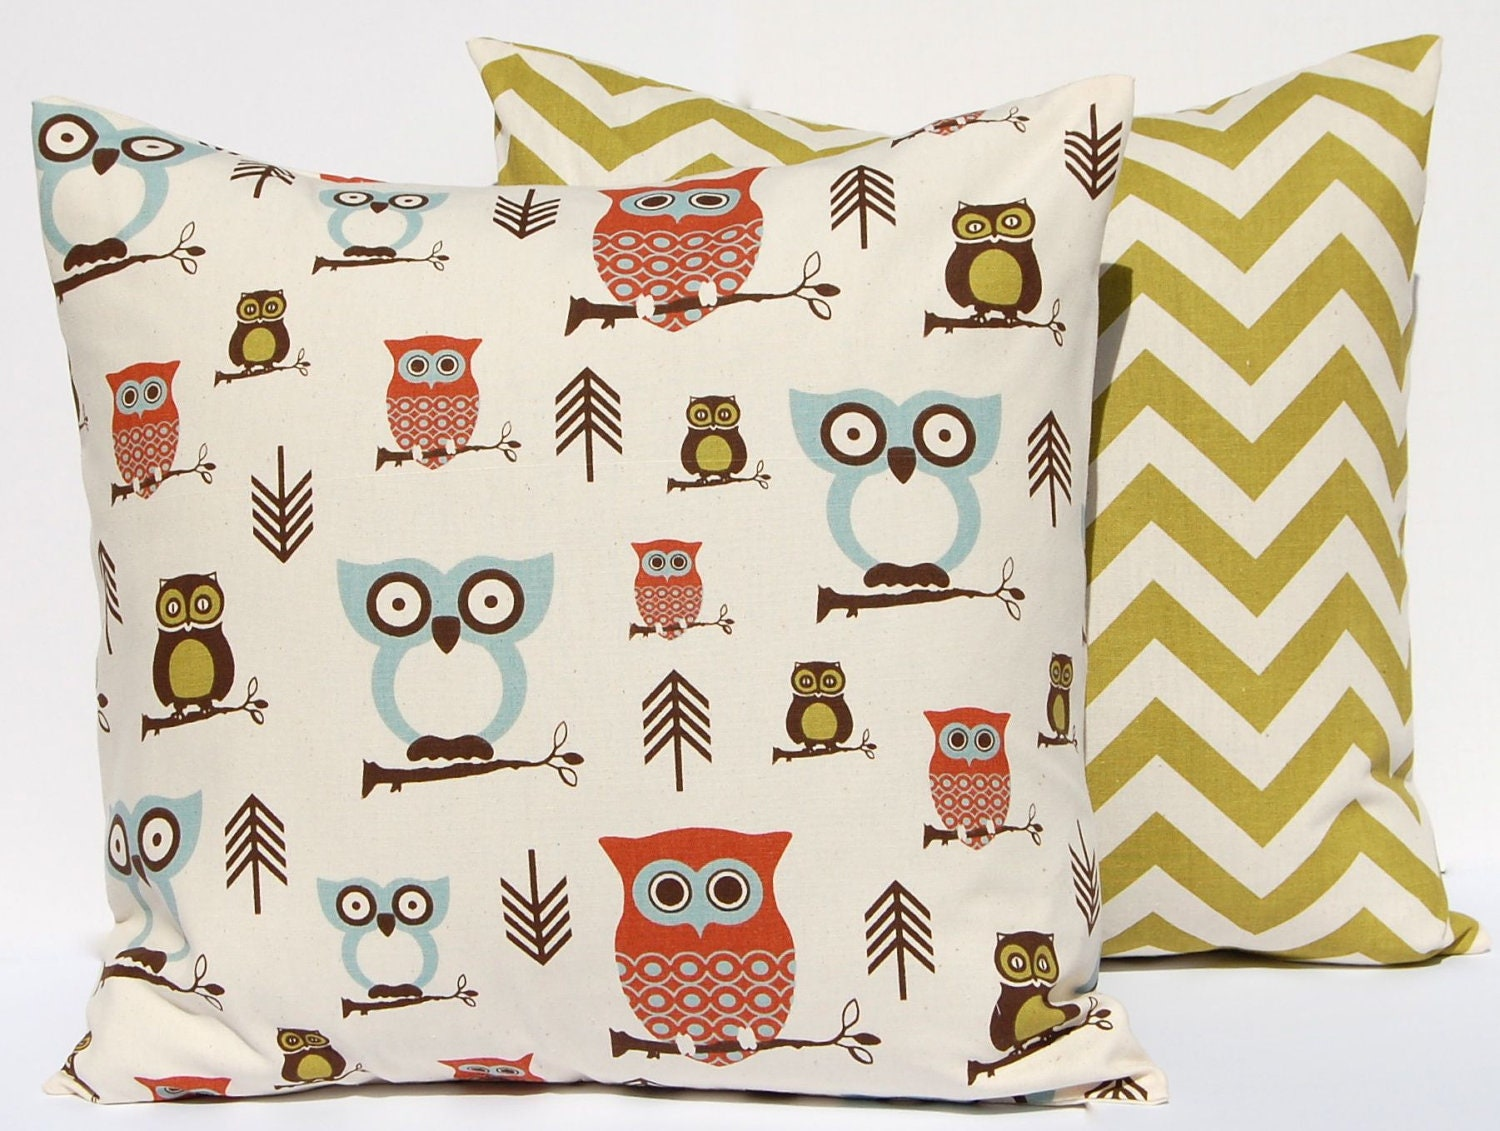 Owl Throw Pillow Etsy : Throw Pillows Owl Decor Nursery Decor Pillow by FestiveHomeDecor